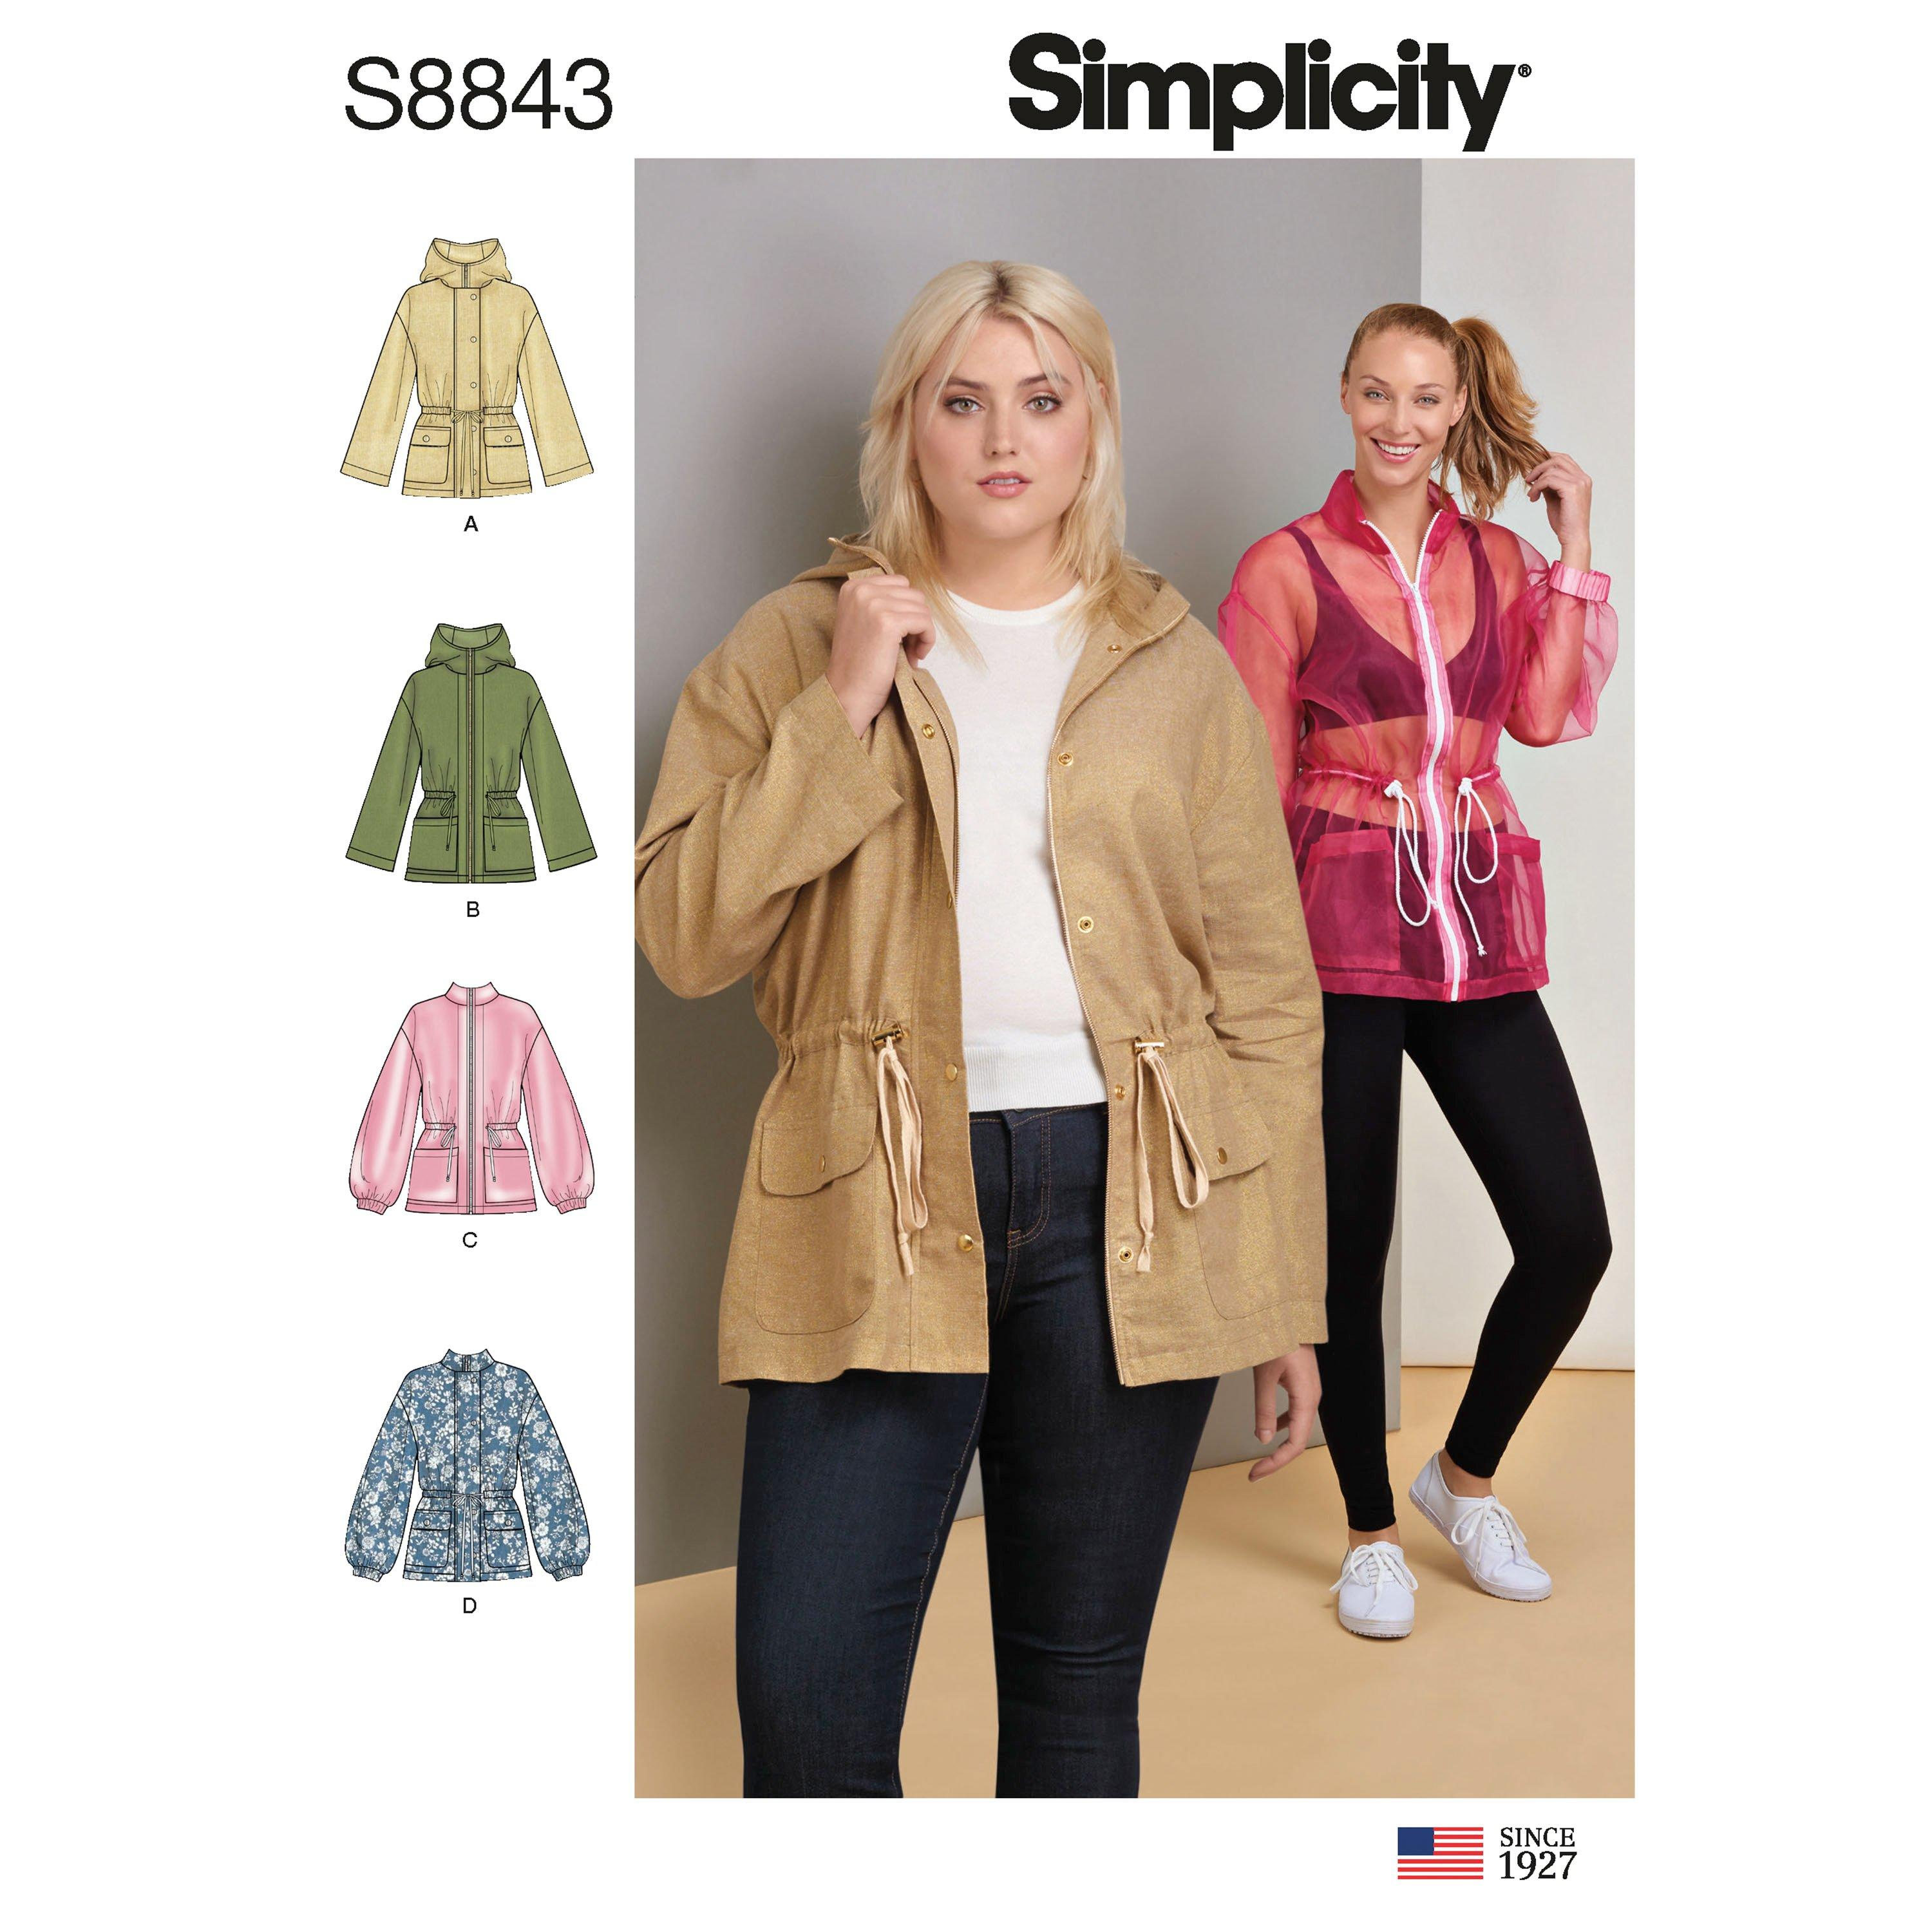 Simplicity S8843 Misses' Anorak Jacket